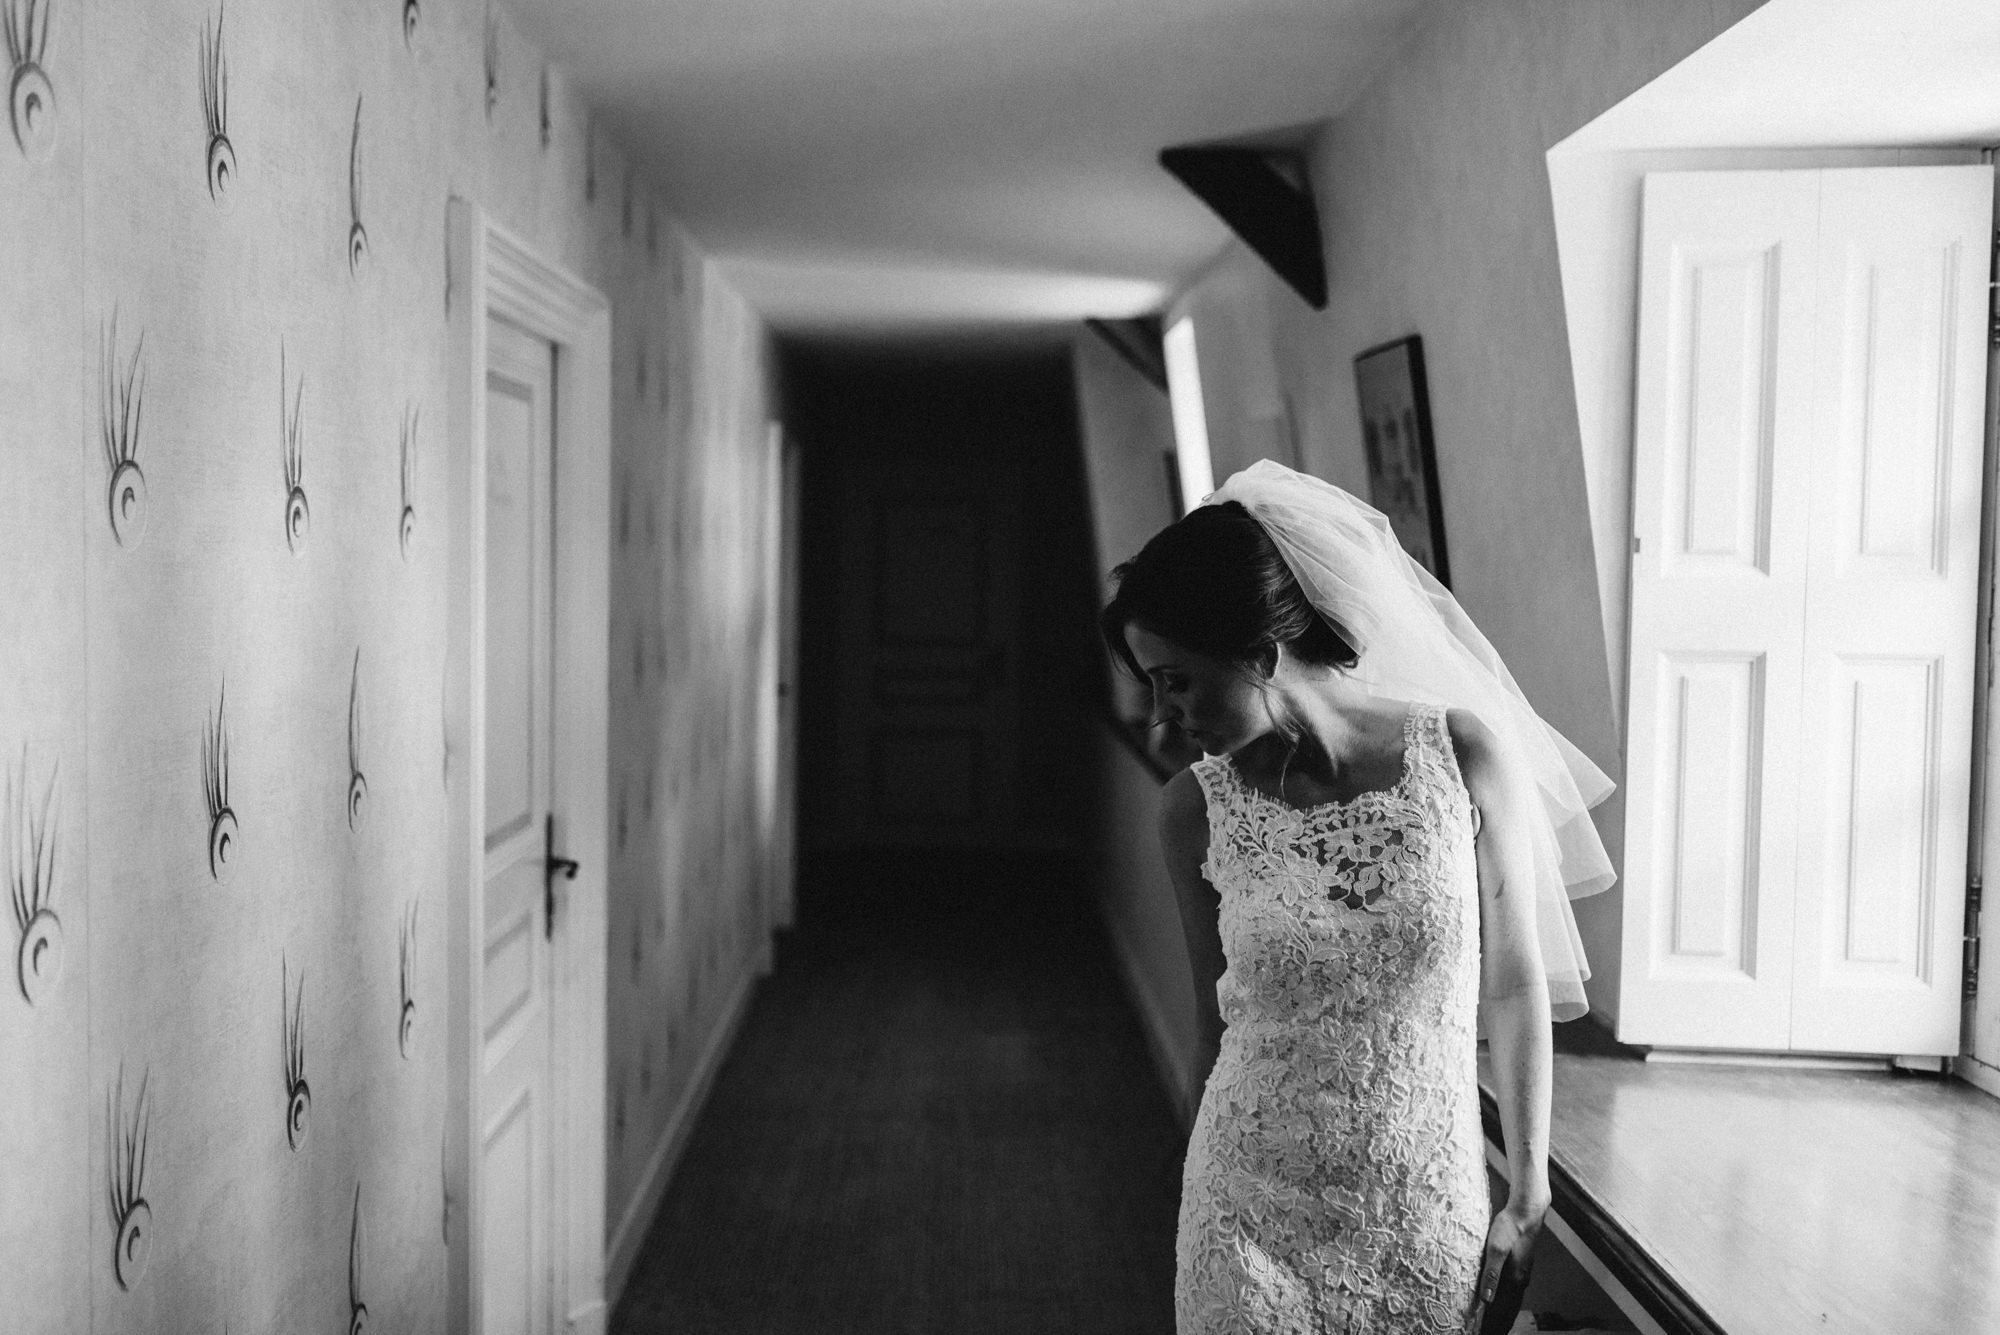 willybroussephotography-wedding-loirevalley-bidaudieres-laura-mathieu-31